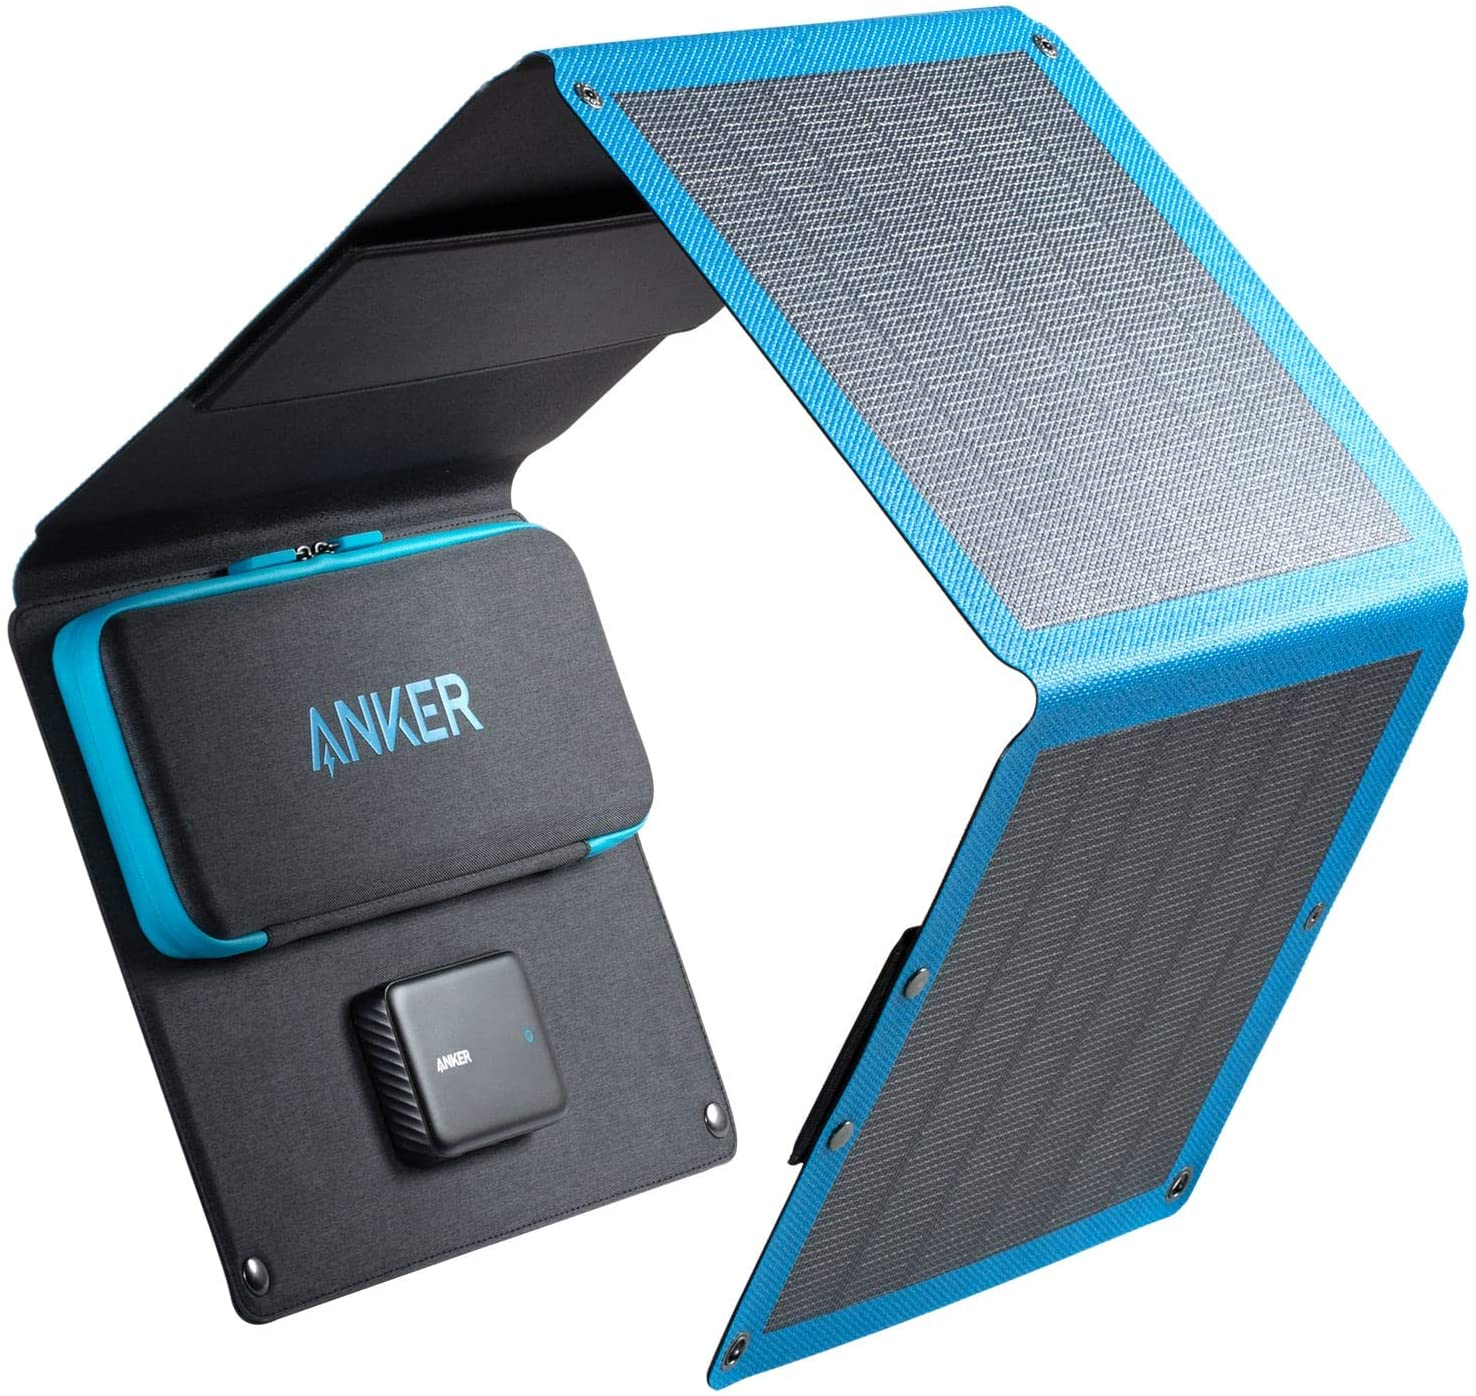 Solar Charger, Anker 24W 3-Port USB Portable Charger with Foldable...